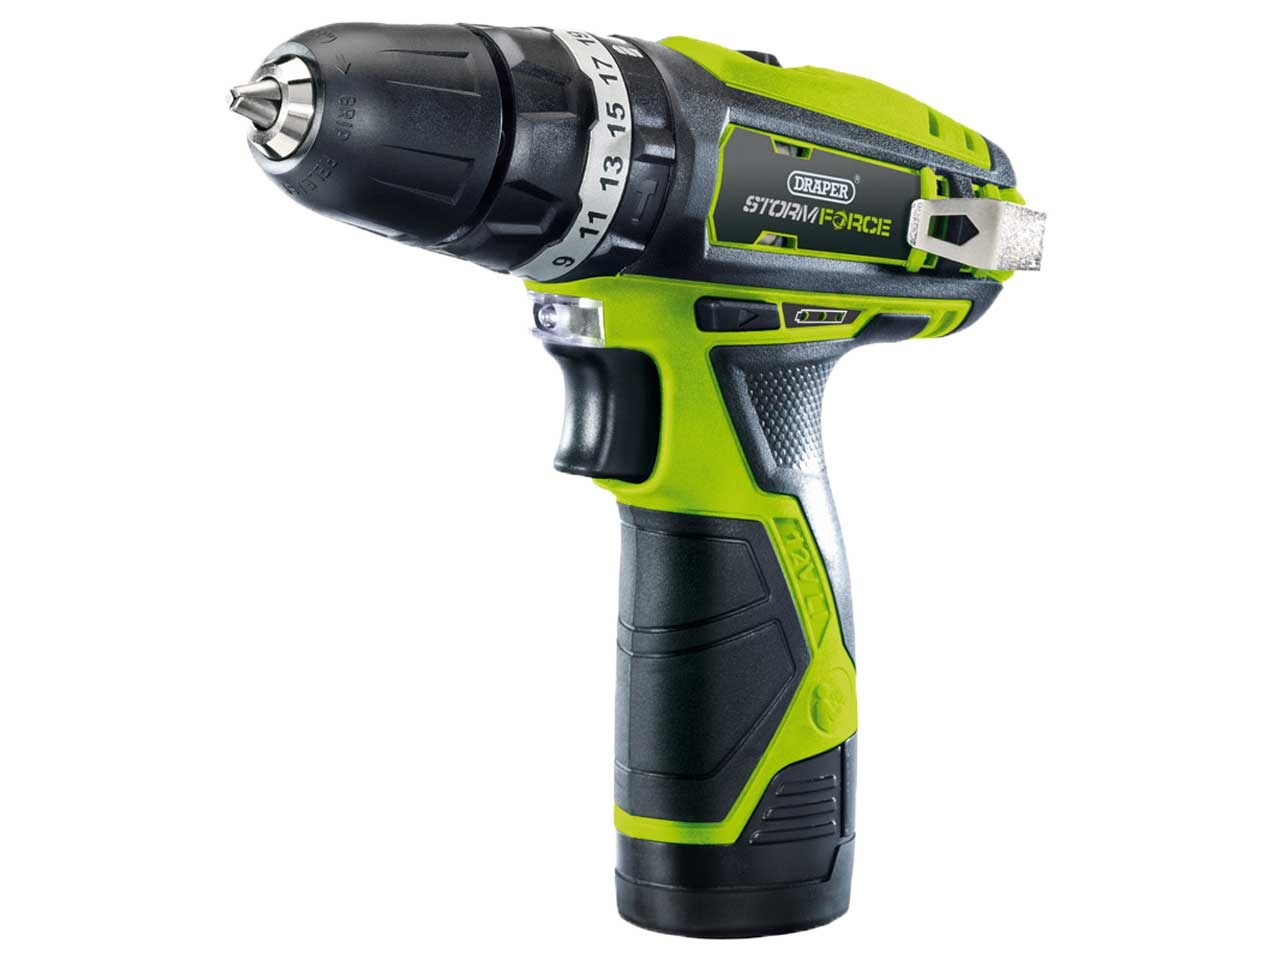 Storm Force® 10.8V Cordless Hammer Drill with Li-ion Battery – Now Only £59.00